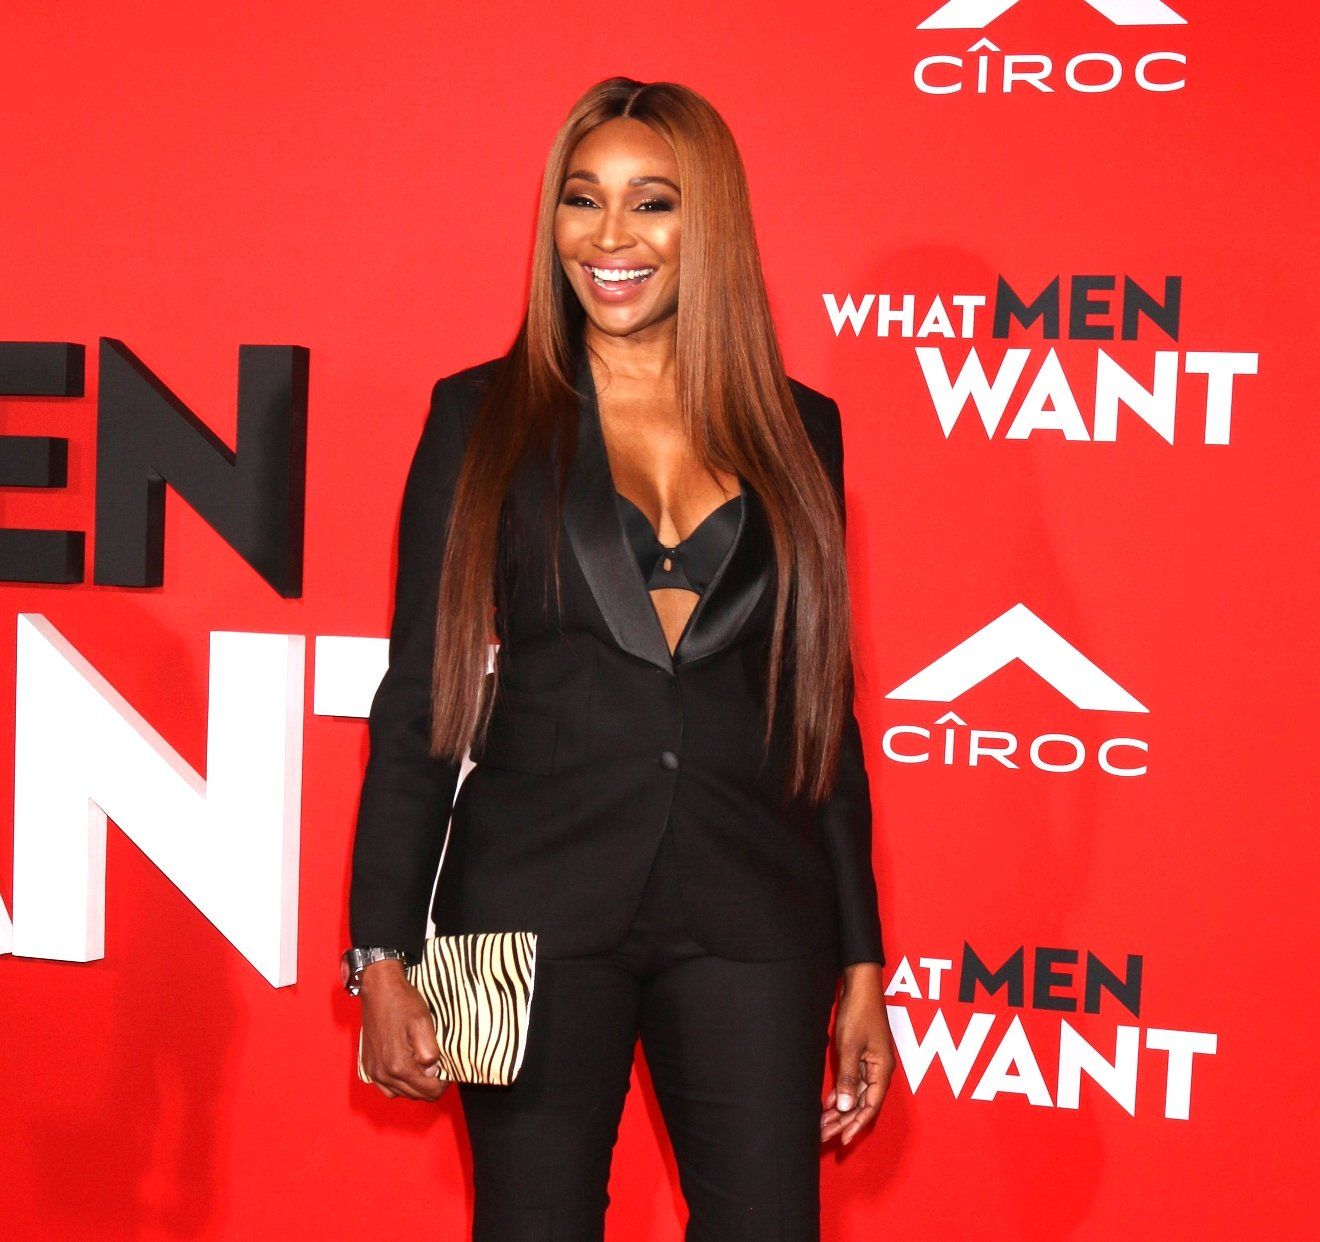 Cynthia Bailey Talks About Creating New Opportunities And Not Waiting For Them #CynthiaBailey, #RealHousewives, #Rhoa celebrityinsider.org #Lifestyle #celebrityinsider #celebritynews #celebrities #celebrity #rumors #gossip